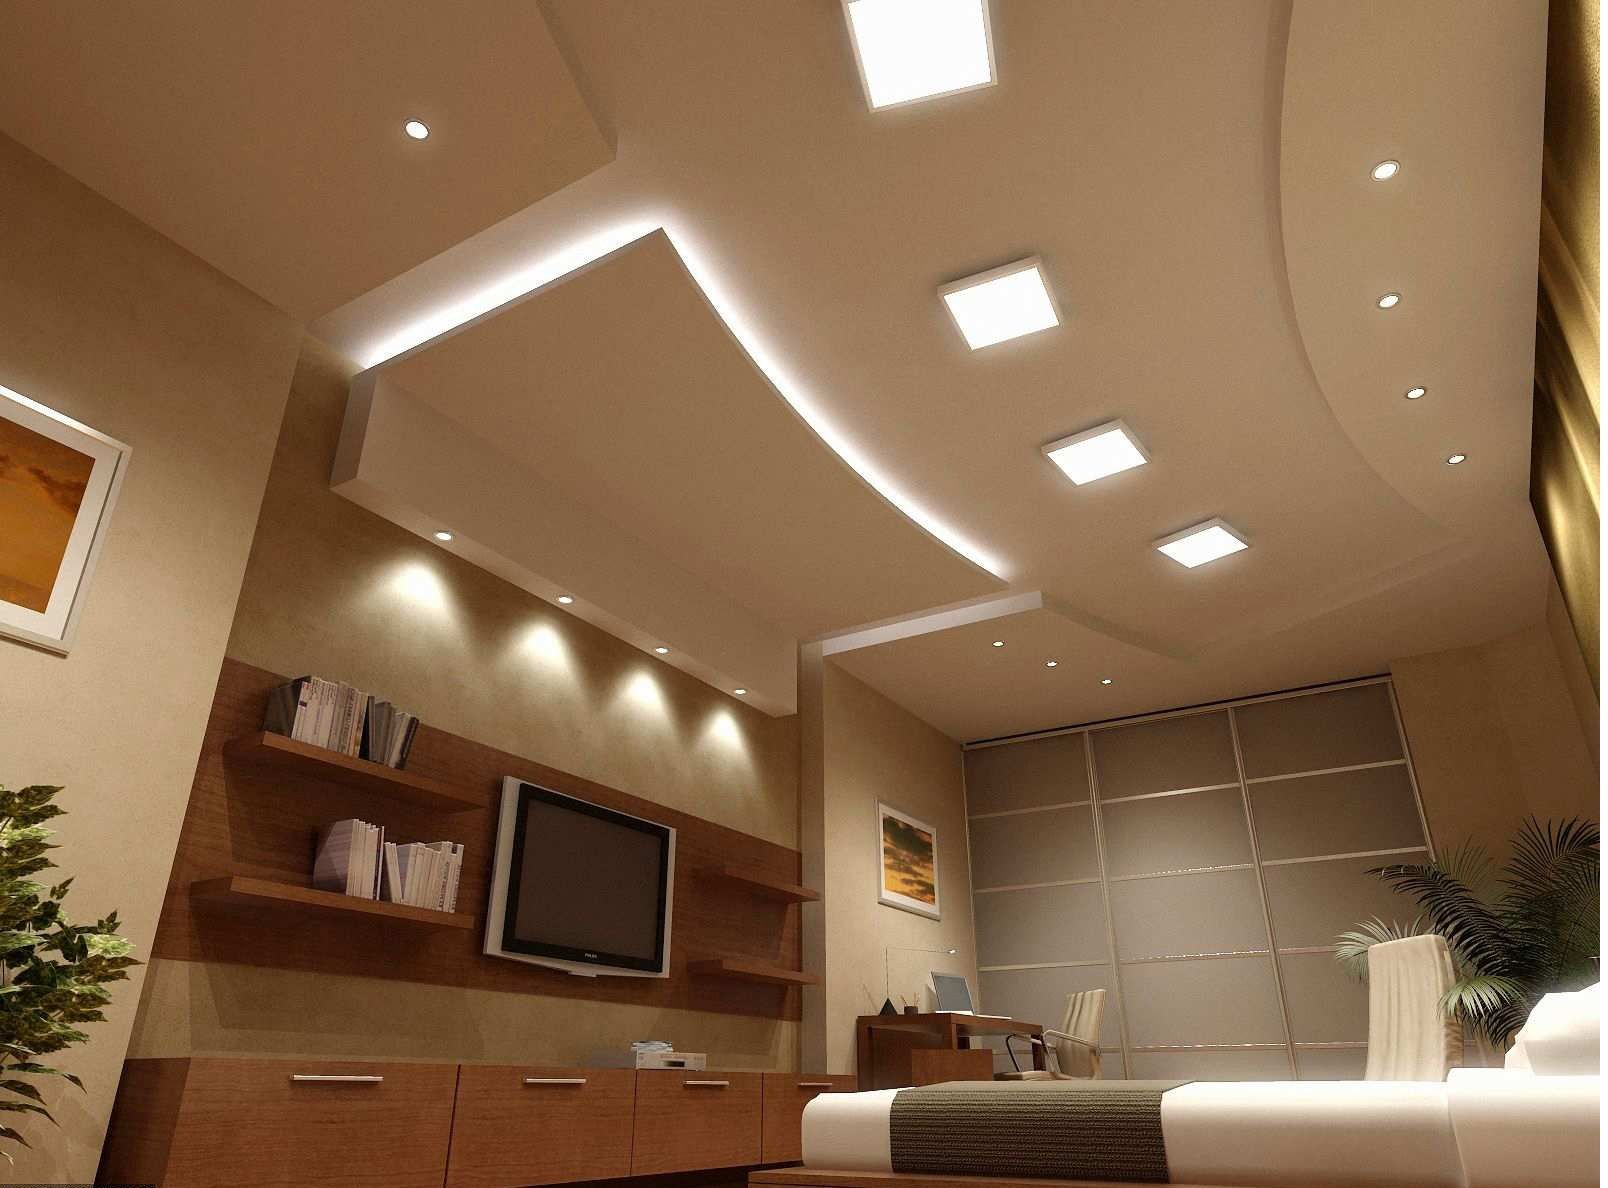 Ceiling Design Ideas home ceiling design ideas screenshot thumbnail Ceiling Lighting